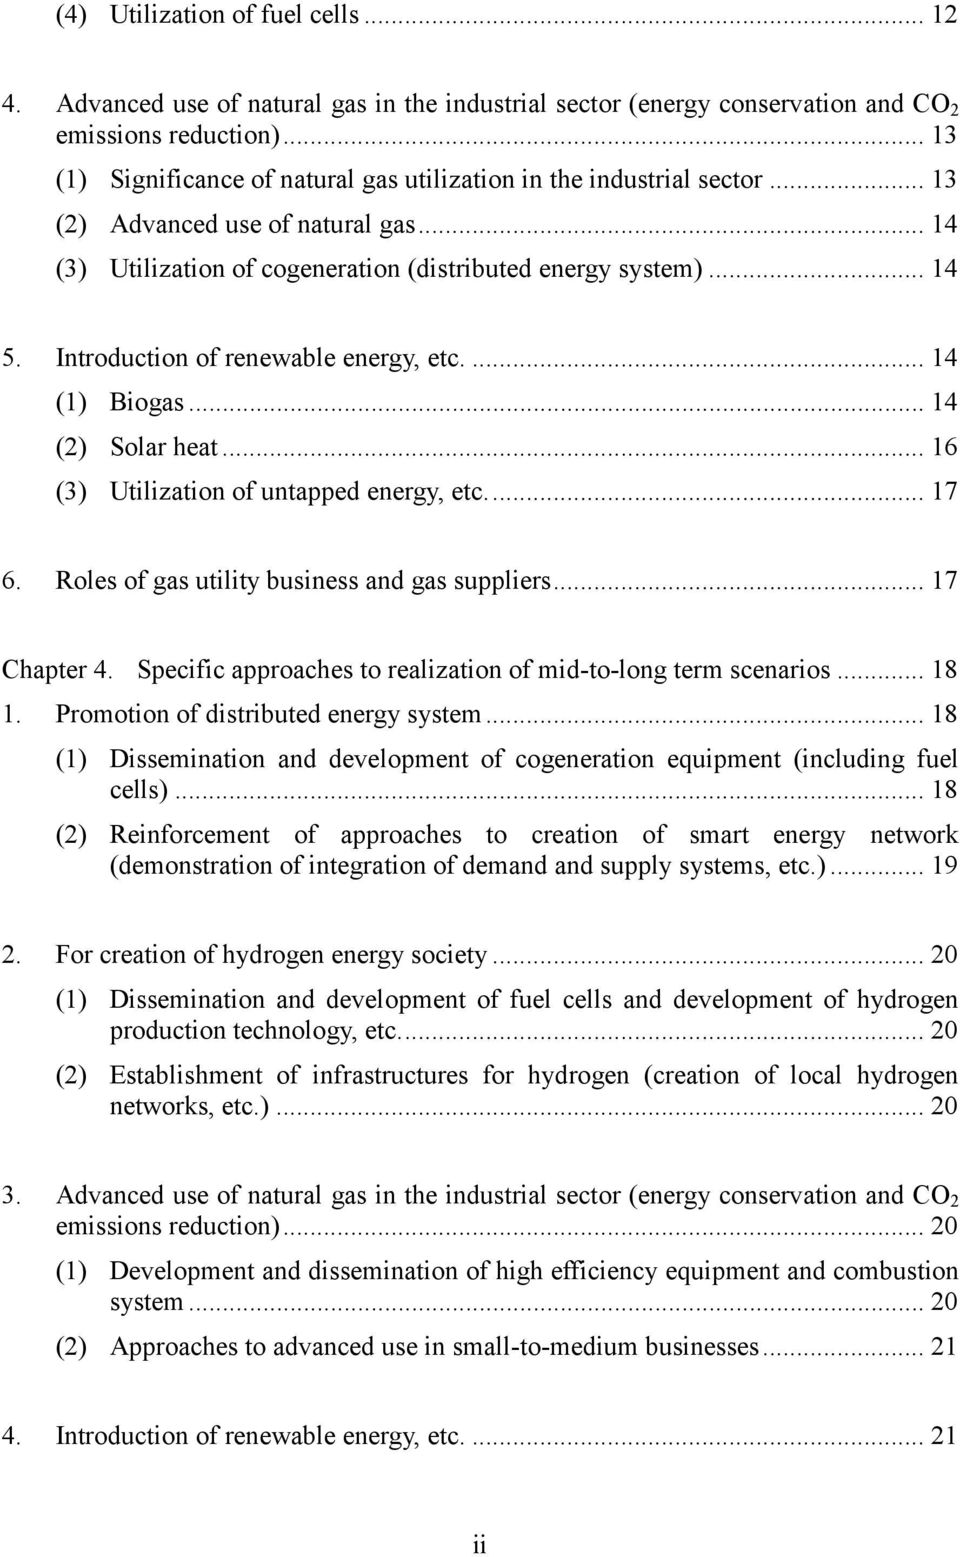 Introduction of renewable energy, etc.... 14 (1) Biogas... 14 (2) Solar heat... 16 (3) Utilization of untapped energy, etc.... 17 6. Roles of gas utility business and gas suppliers... 17 Chapter 4.